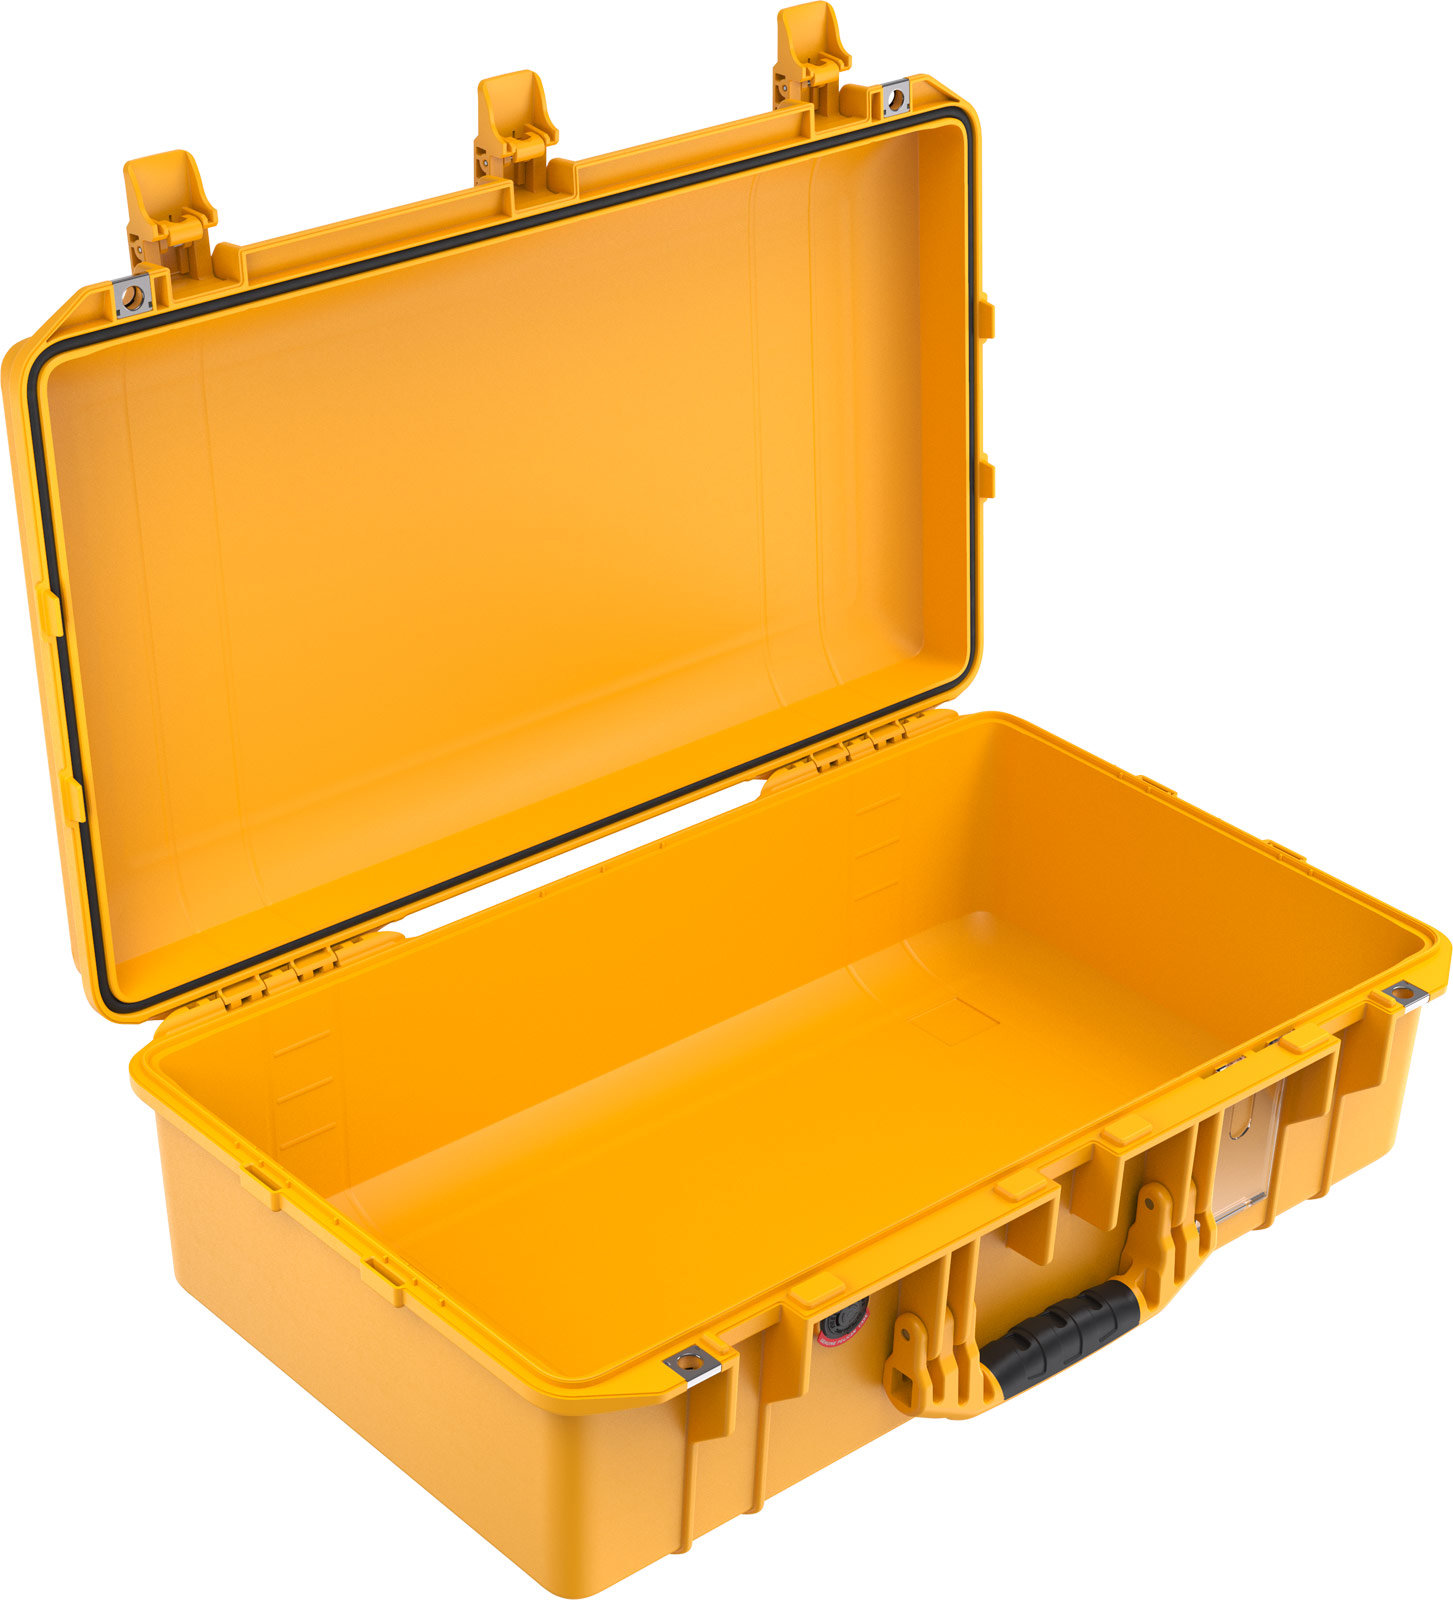 pelican air 1555 watertight yellow camera case